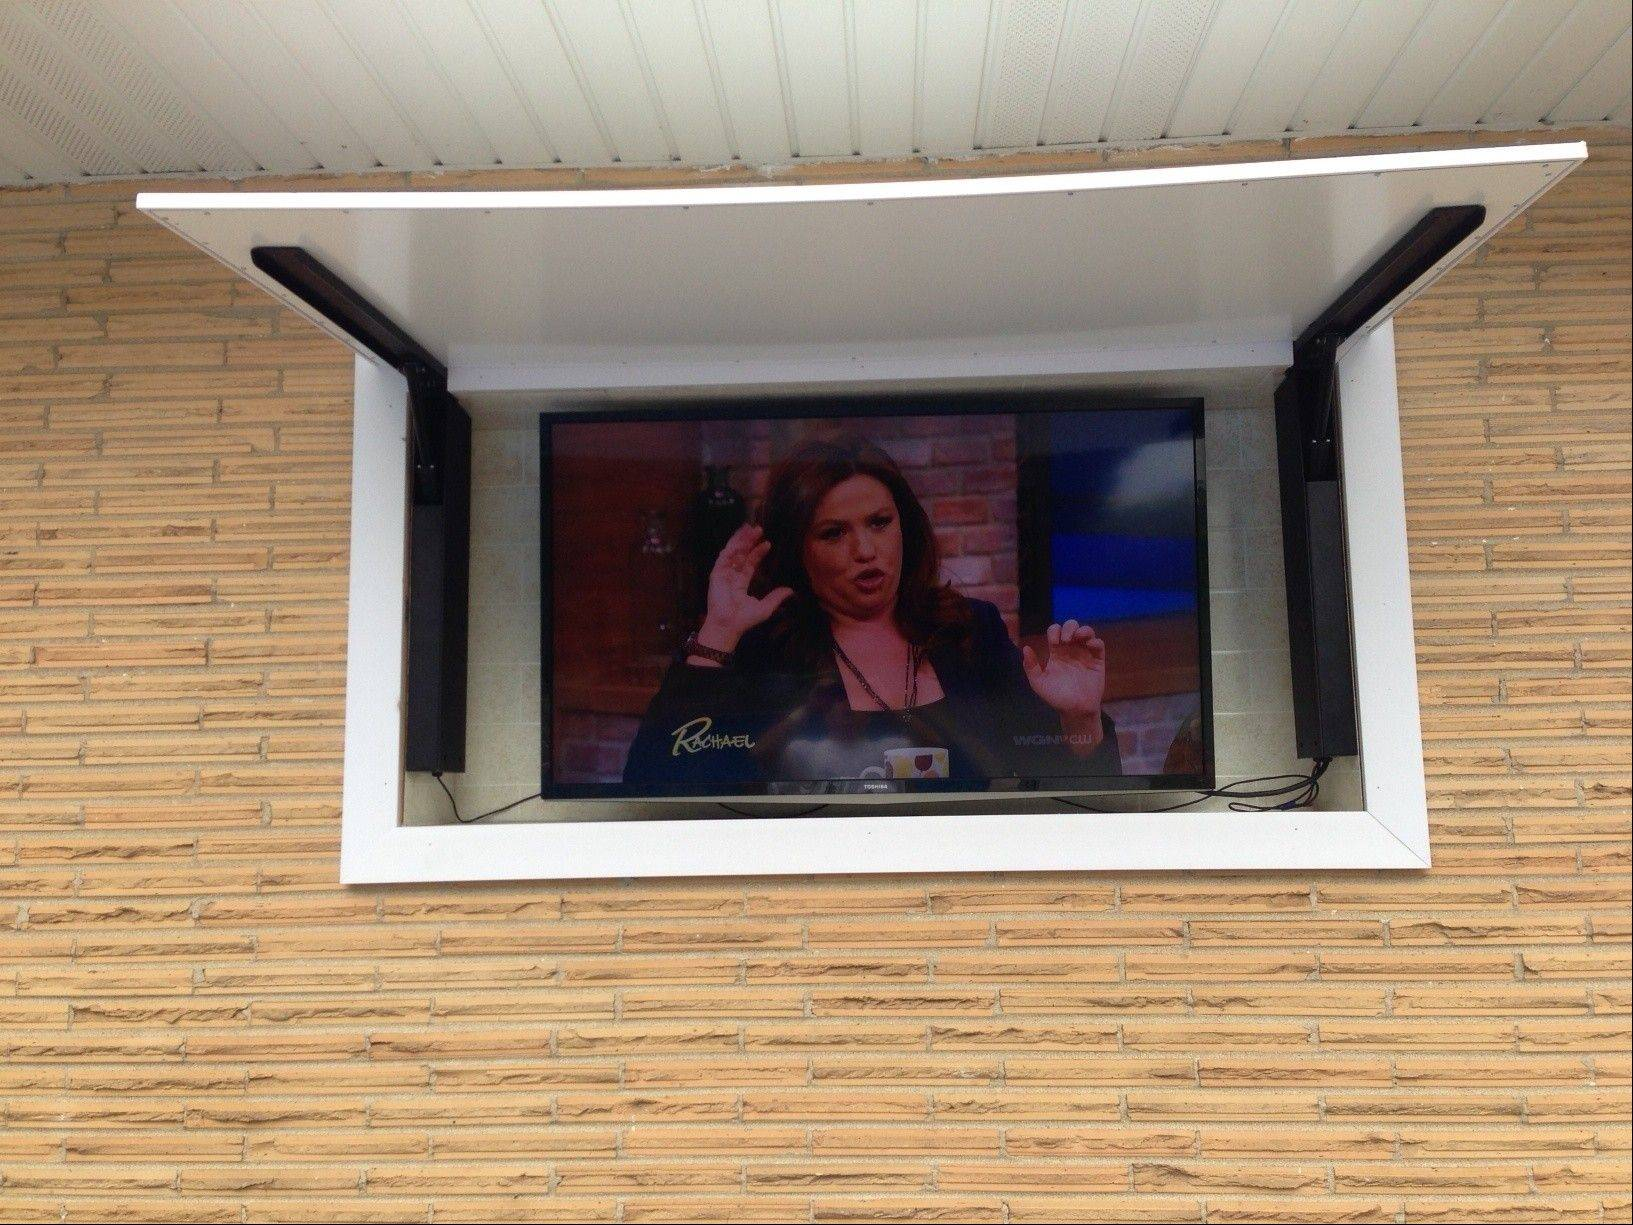 A remote-controlled cover allows you to watch TV on your deck or patio.